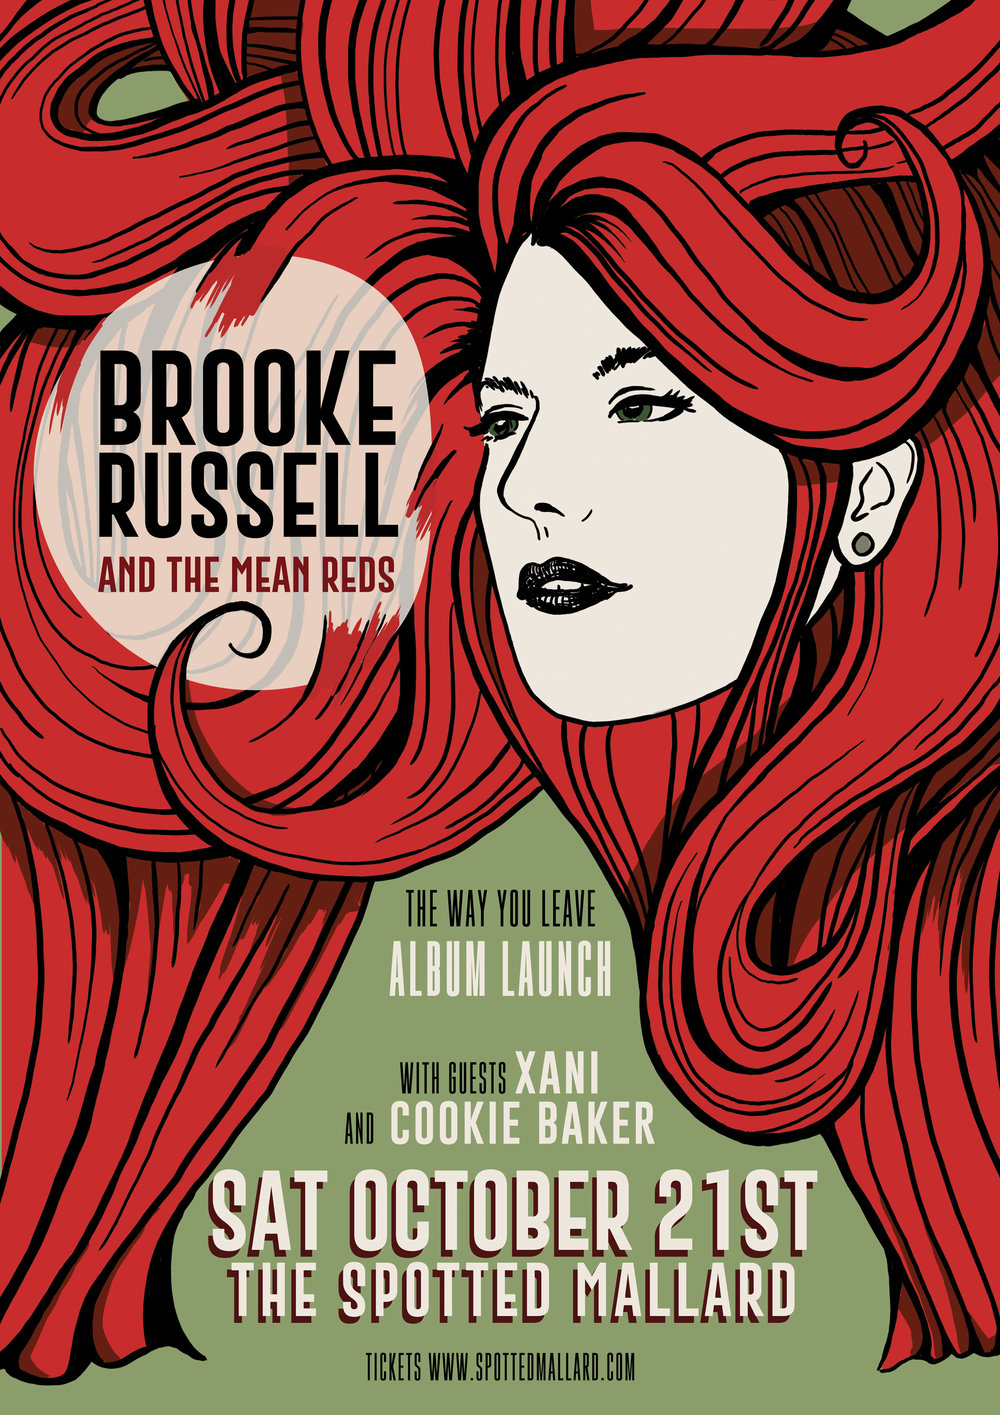 BROOKE RUSSELLAND THE MEAN REDS - ALBUM LAUNCHwith special guestsXani and Cookie BakerThe Spotted Mallard Sat 21st October 8pmCLICK HERE TO BUY TICKETSwww.spottedmallard.com